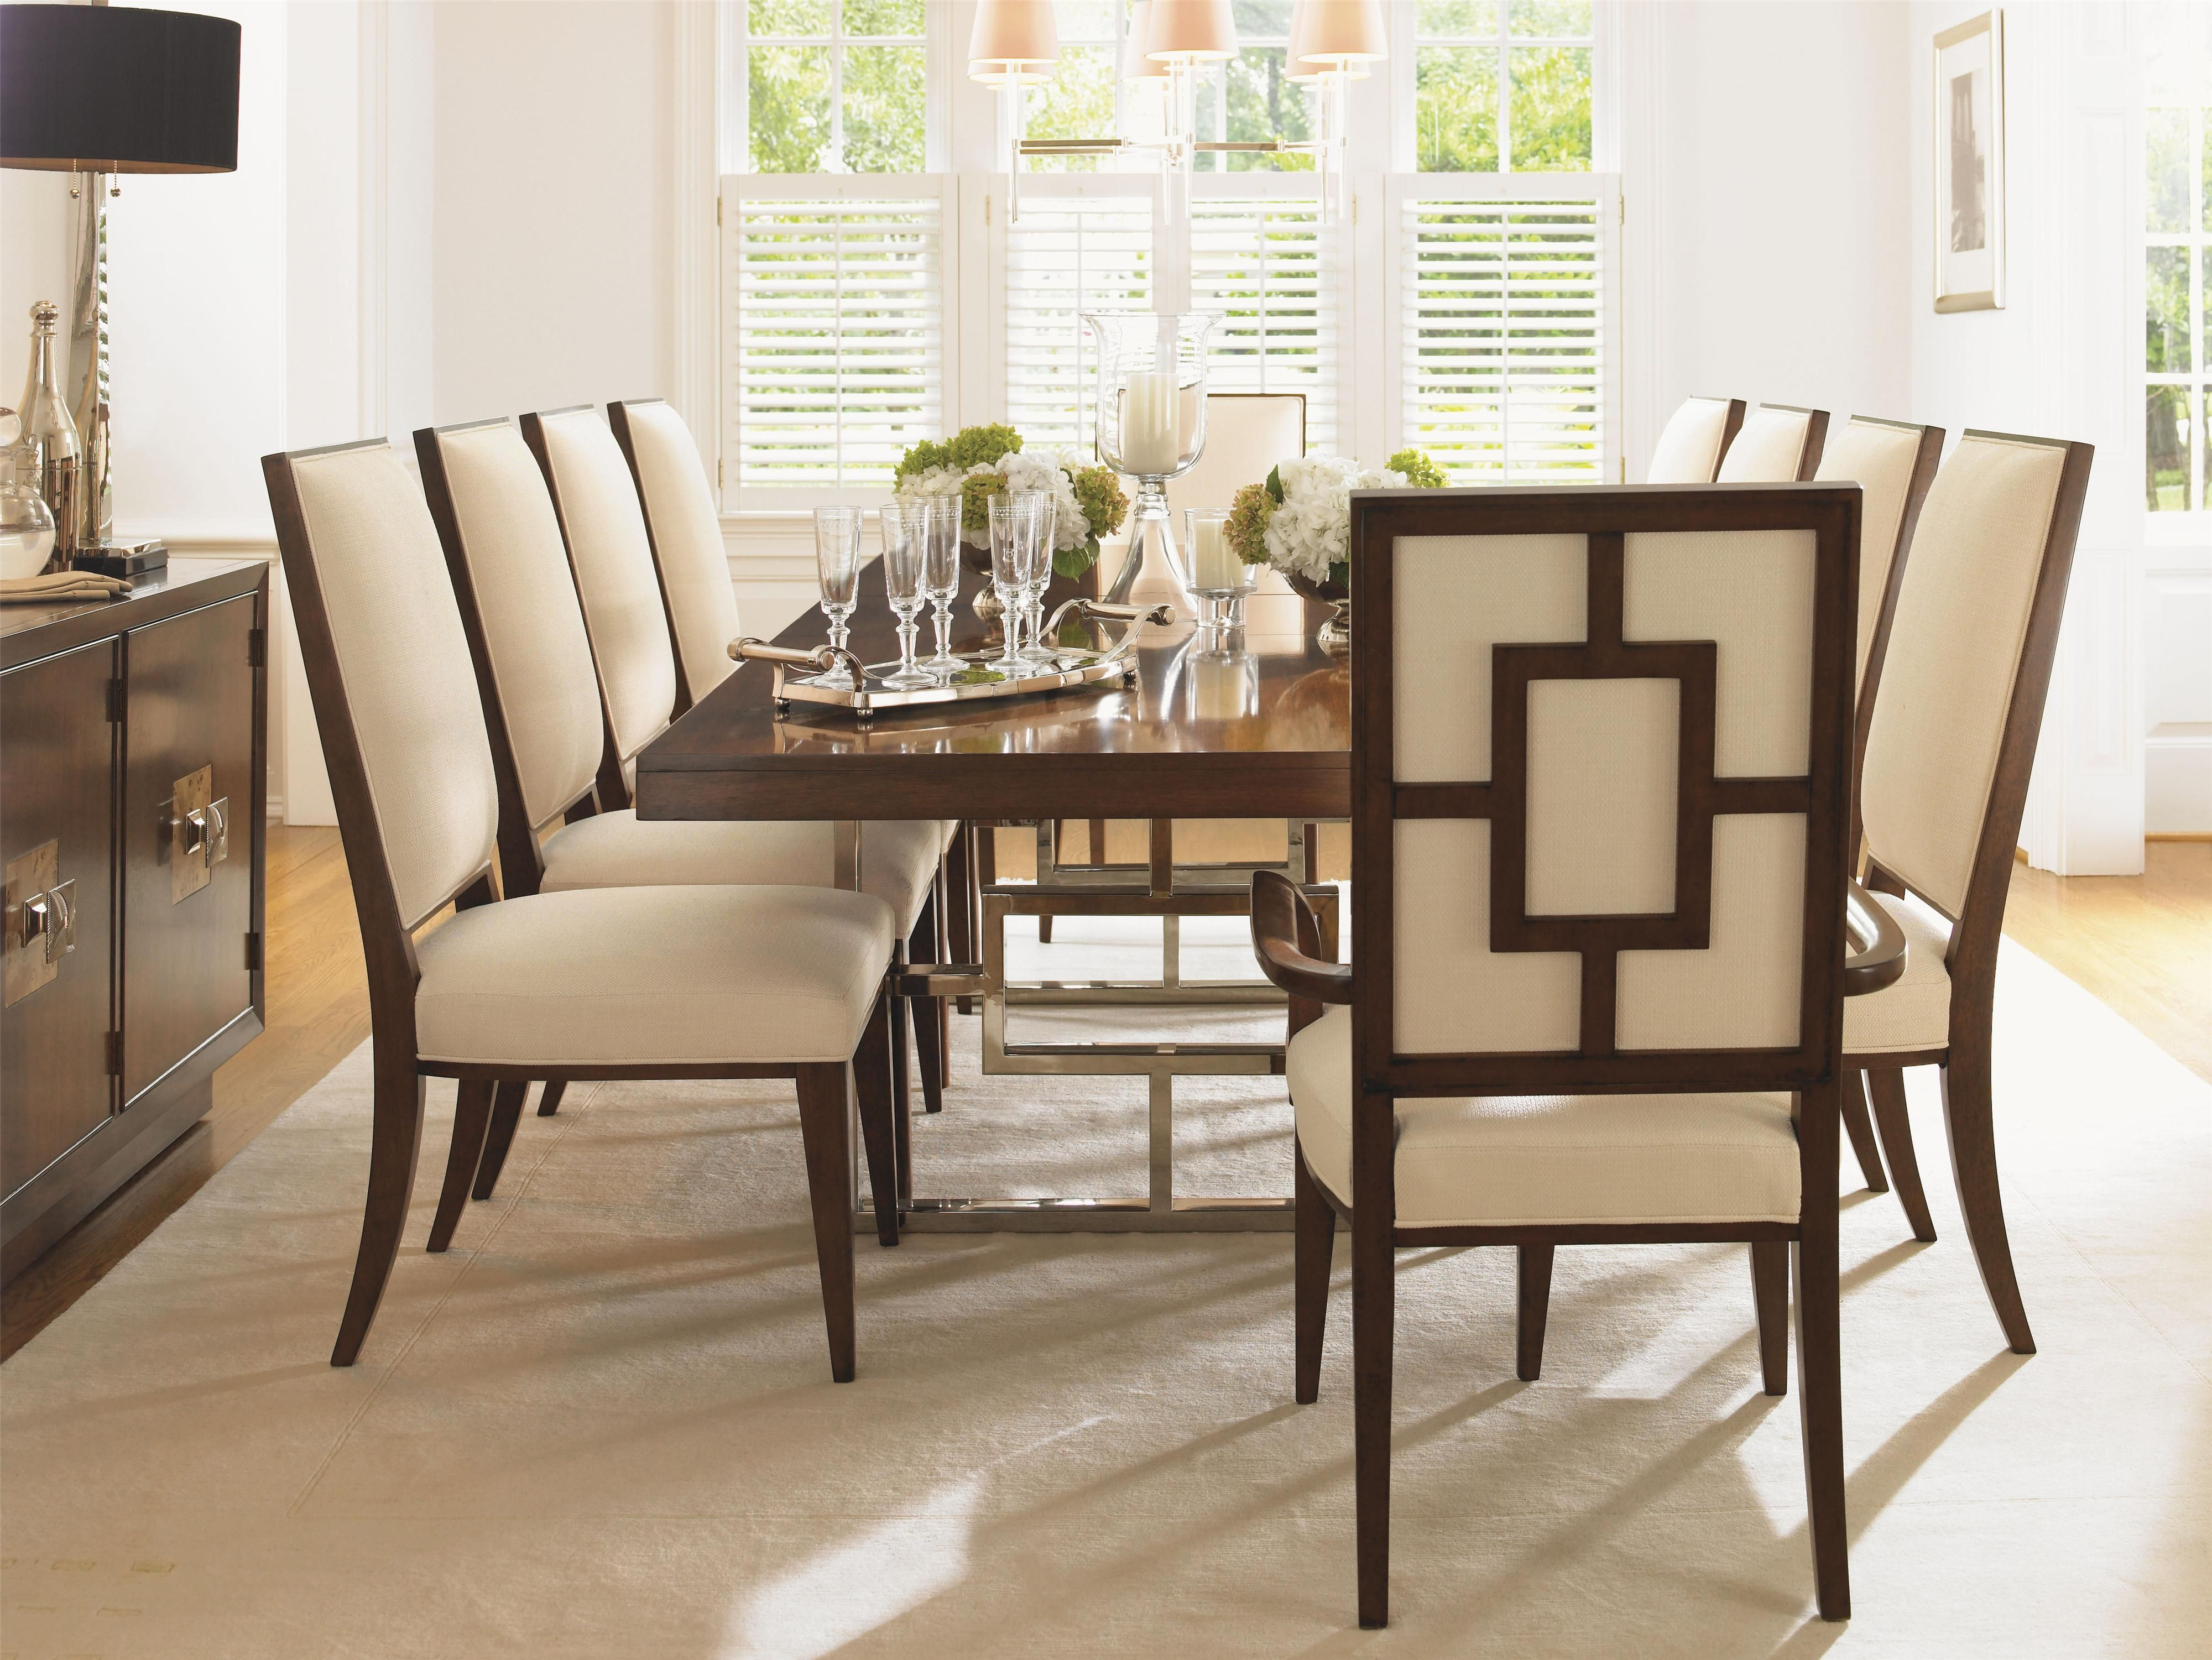 Awesome Mirage (458) By Lexington Home Brands   Sprintz Furniture   Lexington Home  Brands Mirage